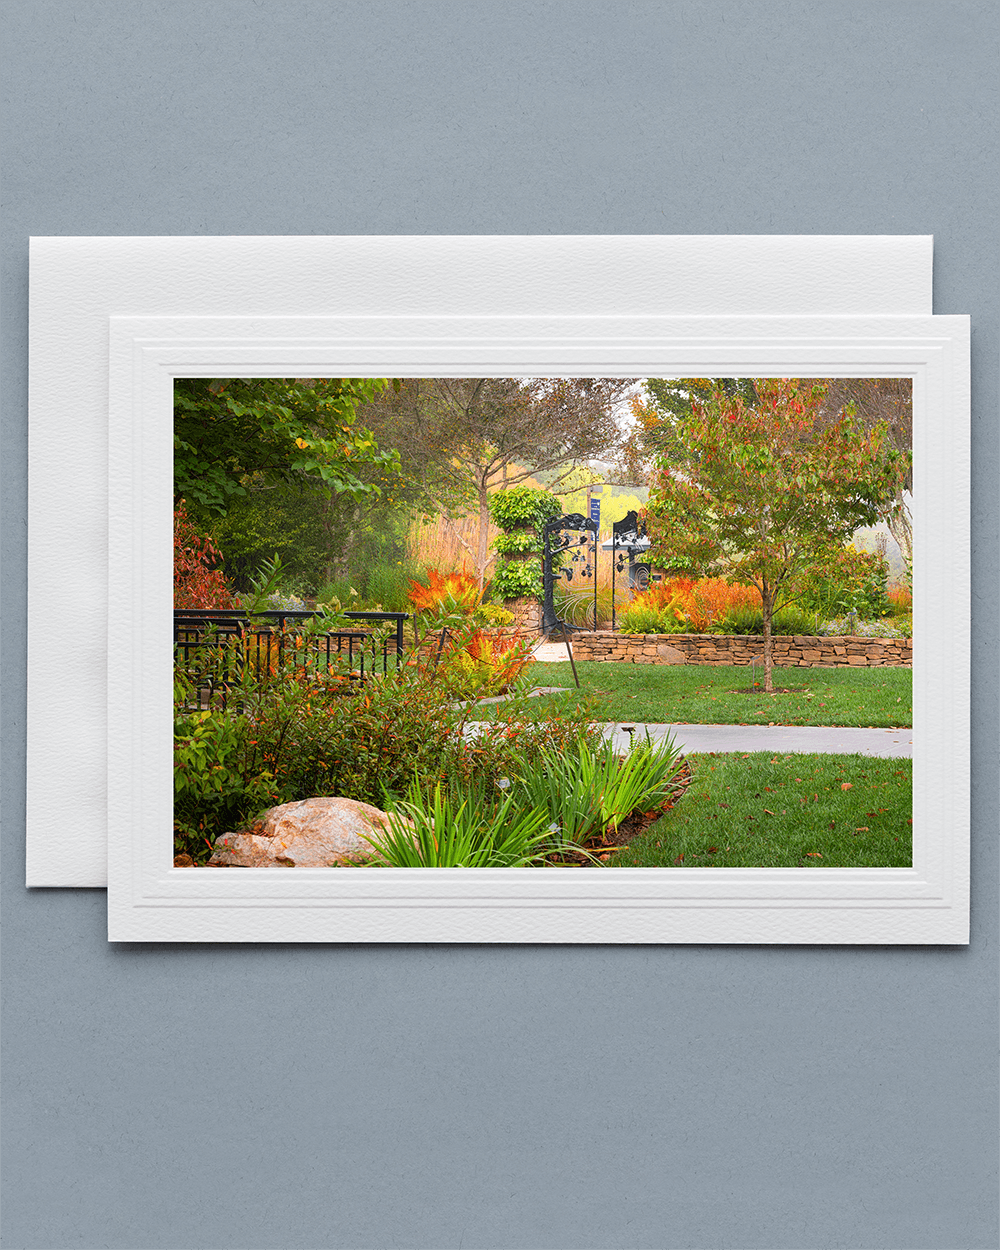 Send a lovely Greeting Card with a real photograph of the North Carolina Arboretum - All Greeting Cards are handmade by us in the U.S.A.